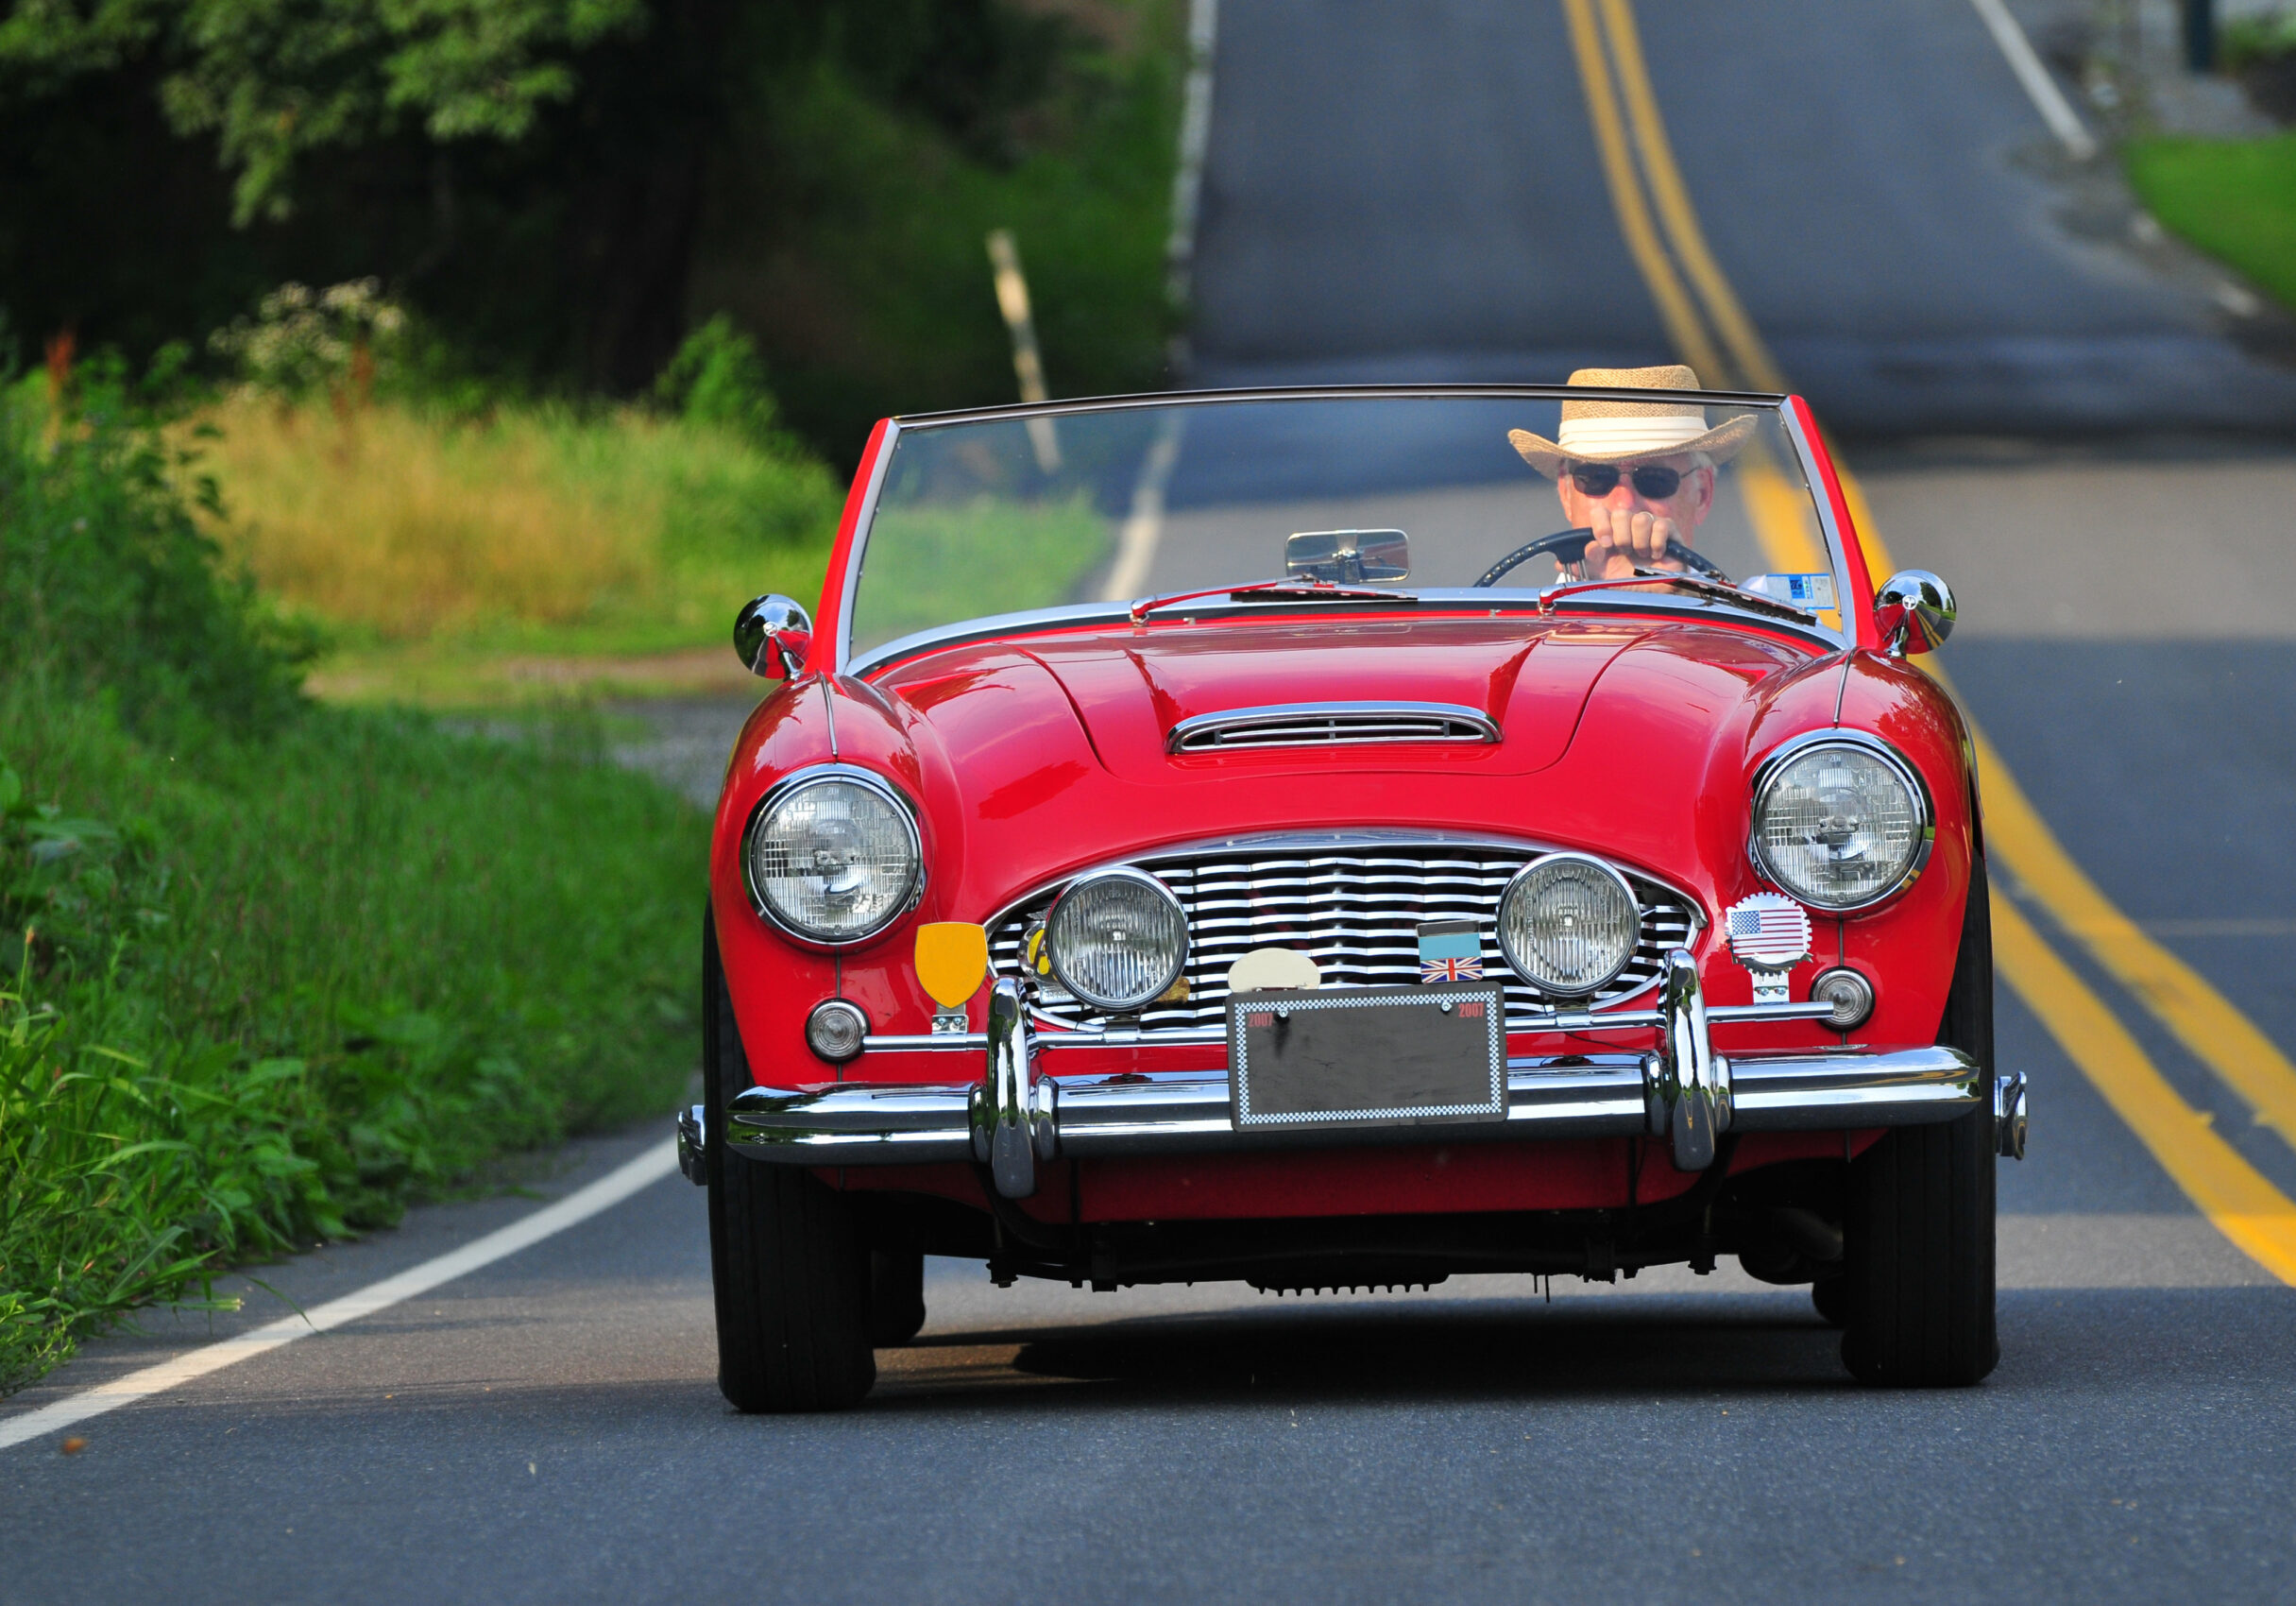 Since you have purchased a classic or antique vehicle, you'll want to insure it properly, as it is an investment.